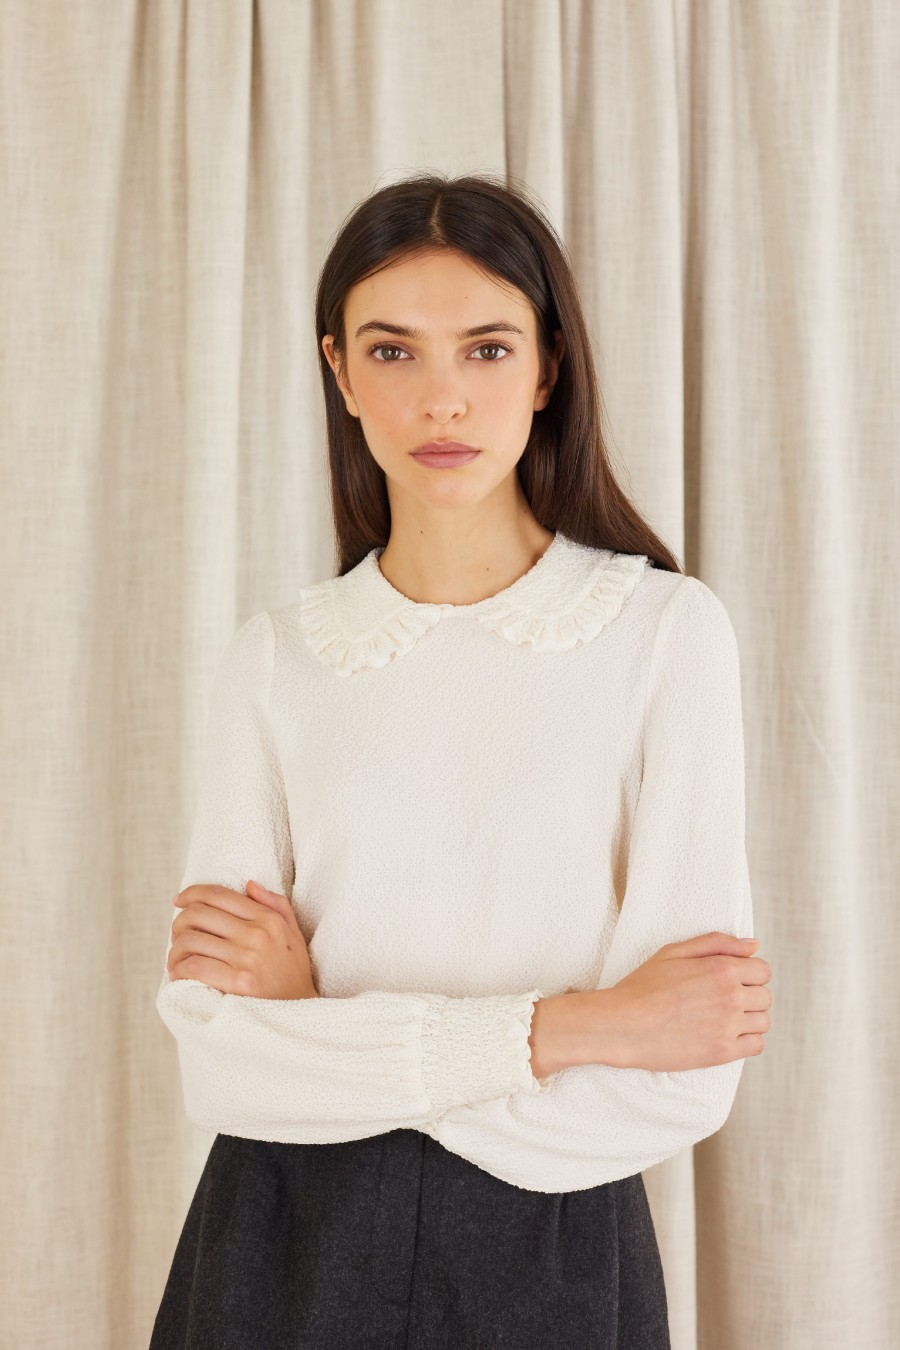 Seersucker blouse with ruffles on the collar